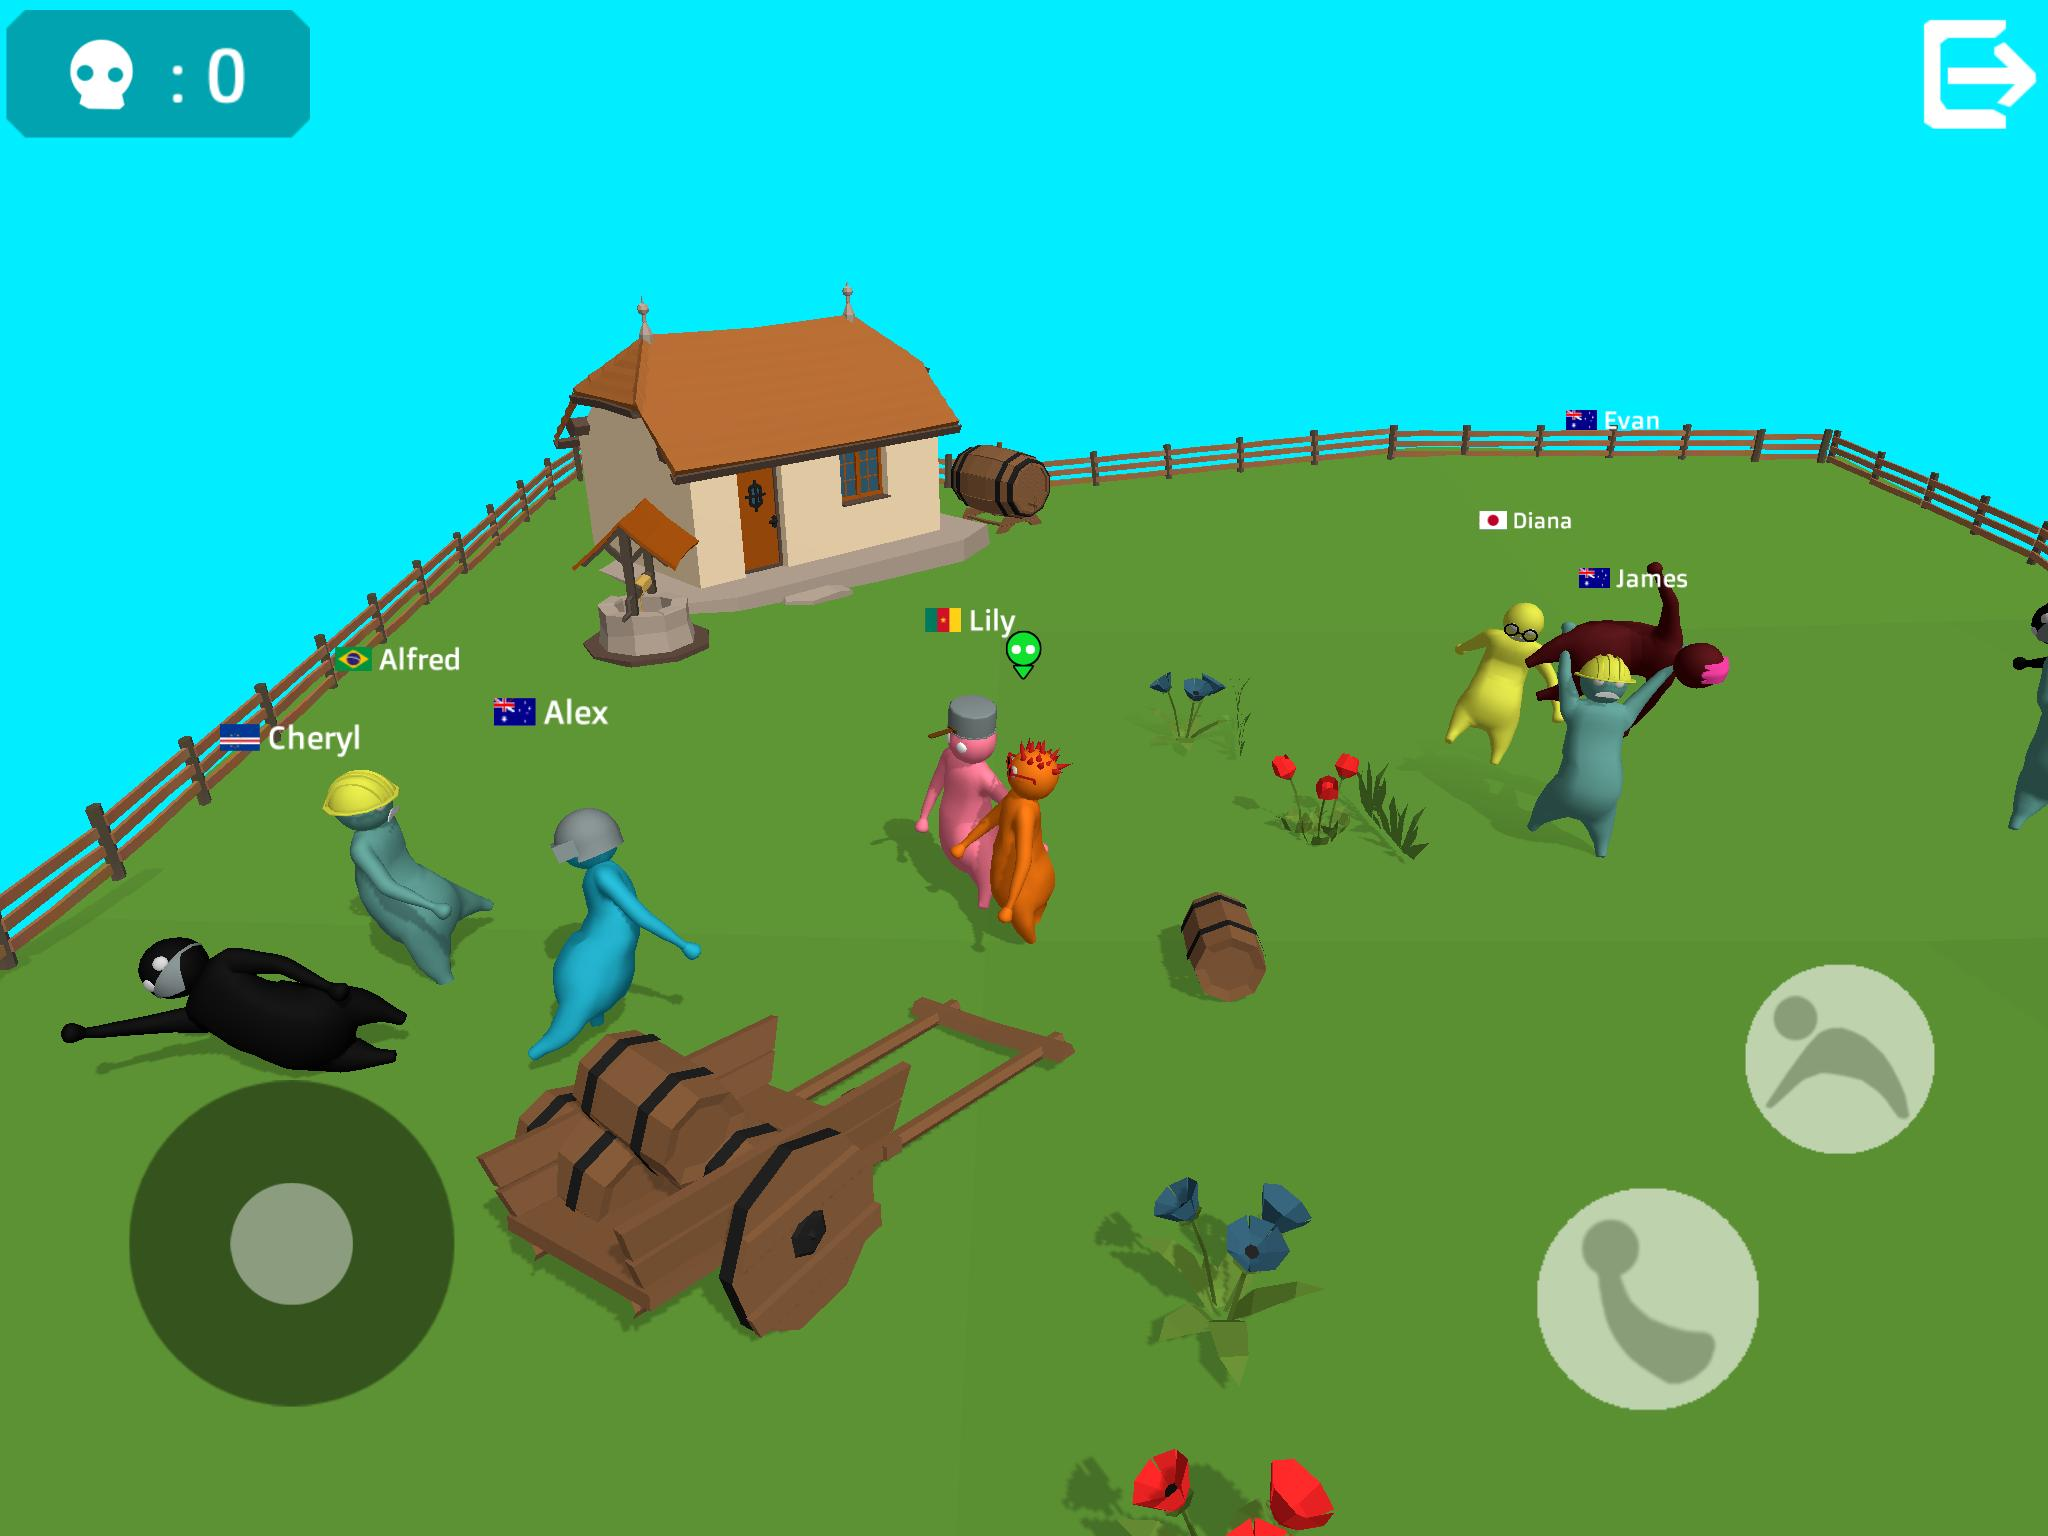 Noodleman.io - Fight Party Games 3.3 Screenshot 10